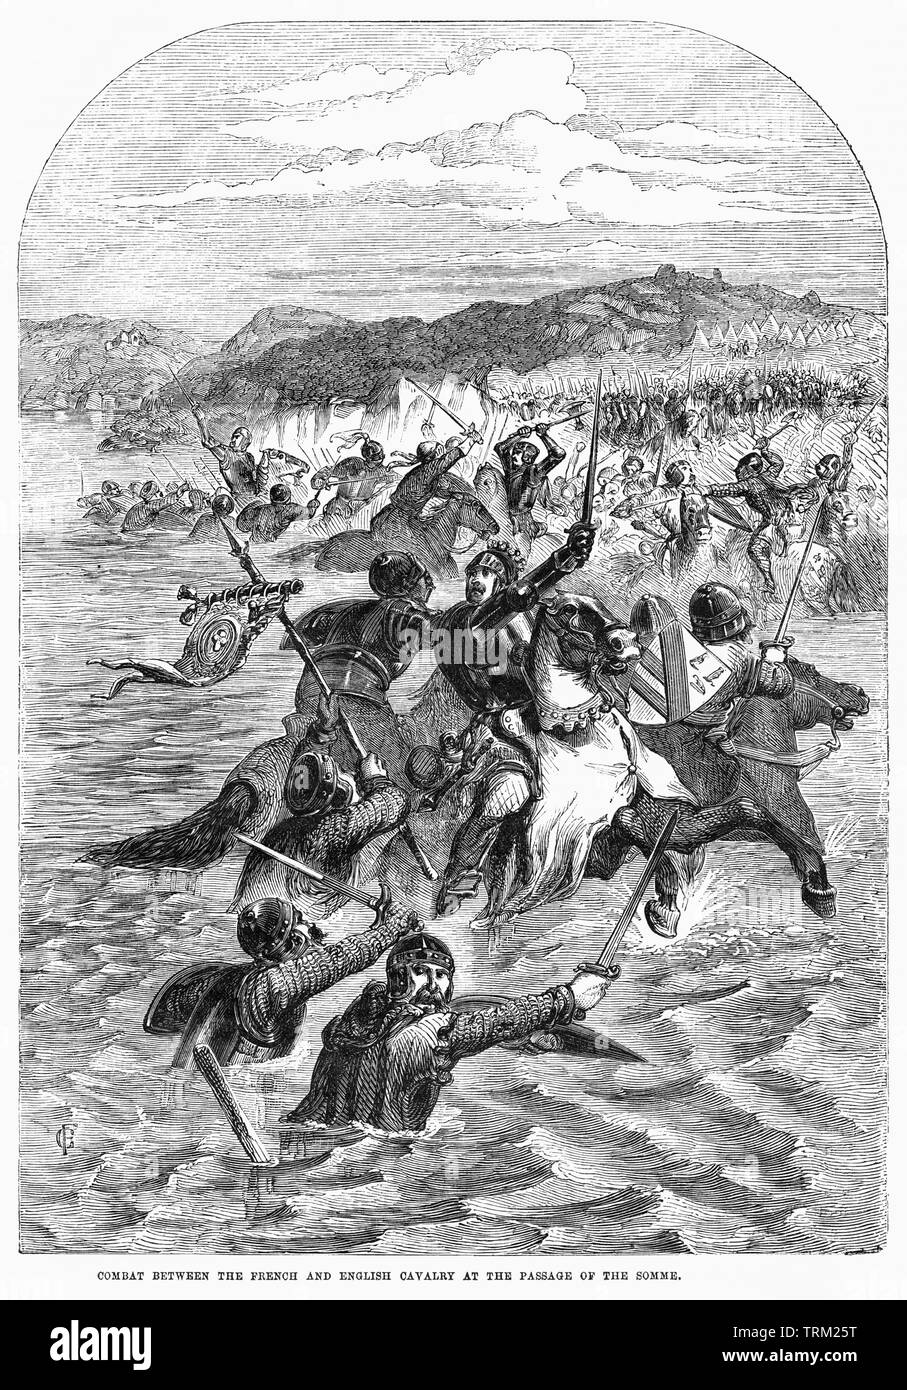 Combat Between the French and English Cavalry at the Passage of the Somme, Illustration from John Cassell's Illustrated History of England, Vol. I from the earliest period to the reign of Edward the Fourth, Cassell, Petter and Galpin, 1857 - Stock Image